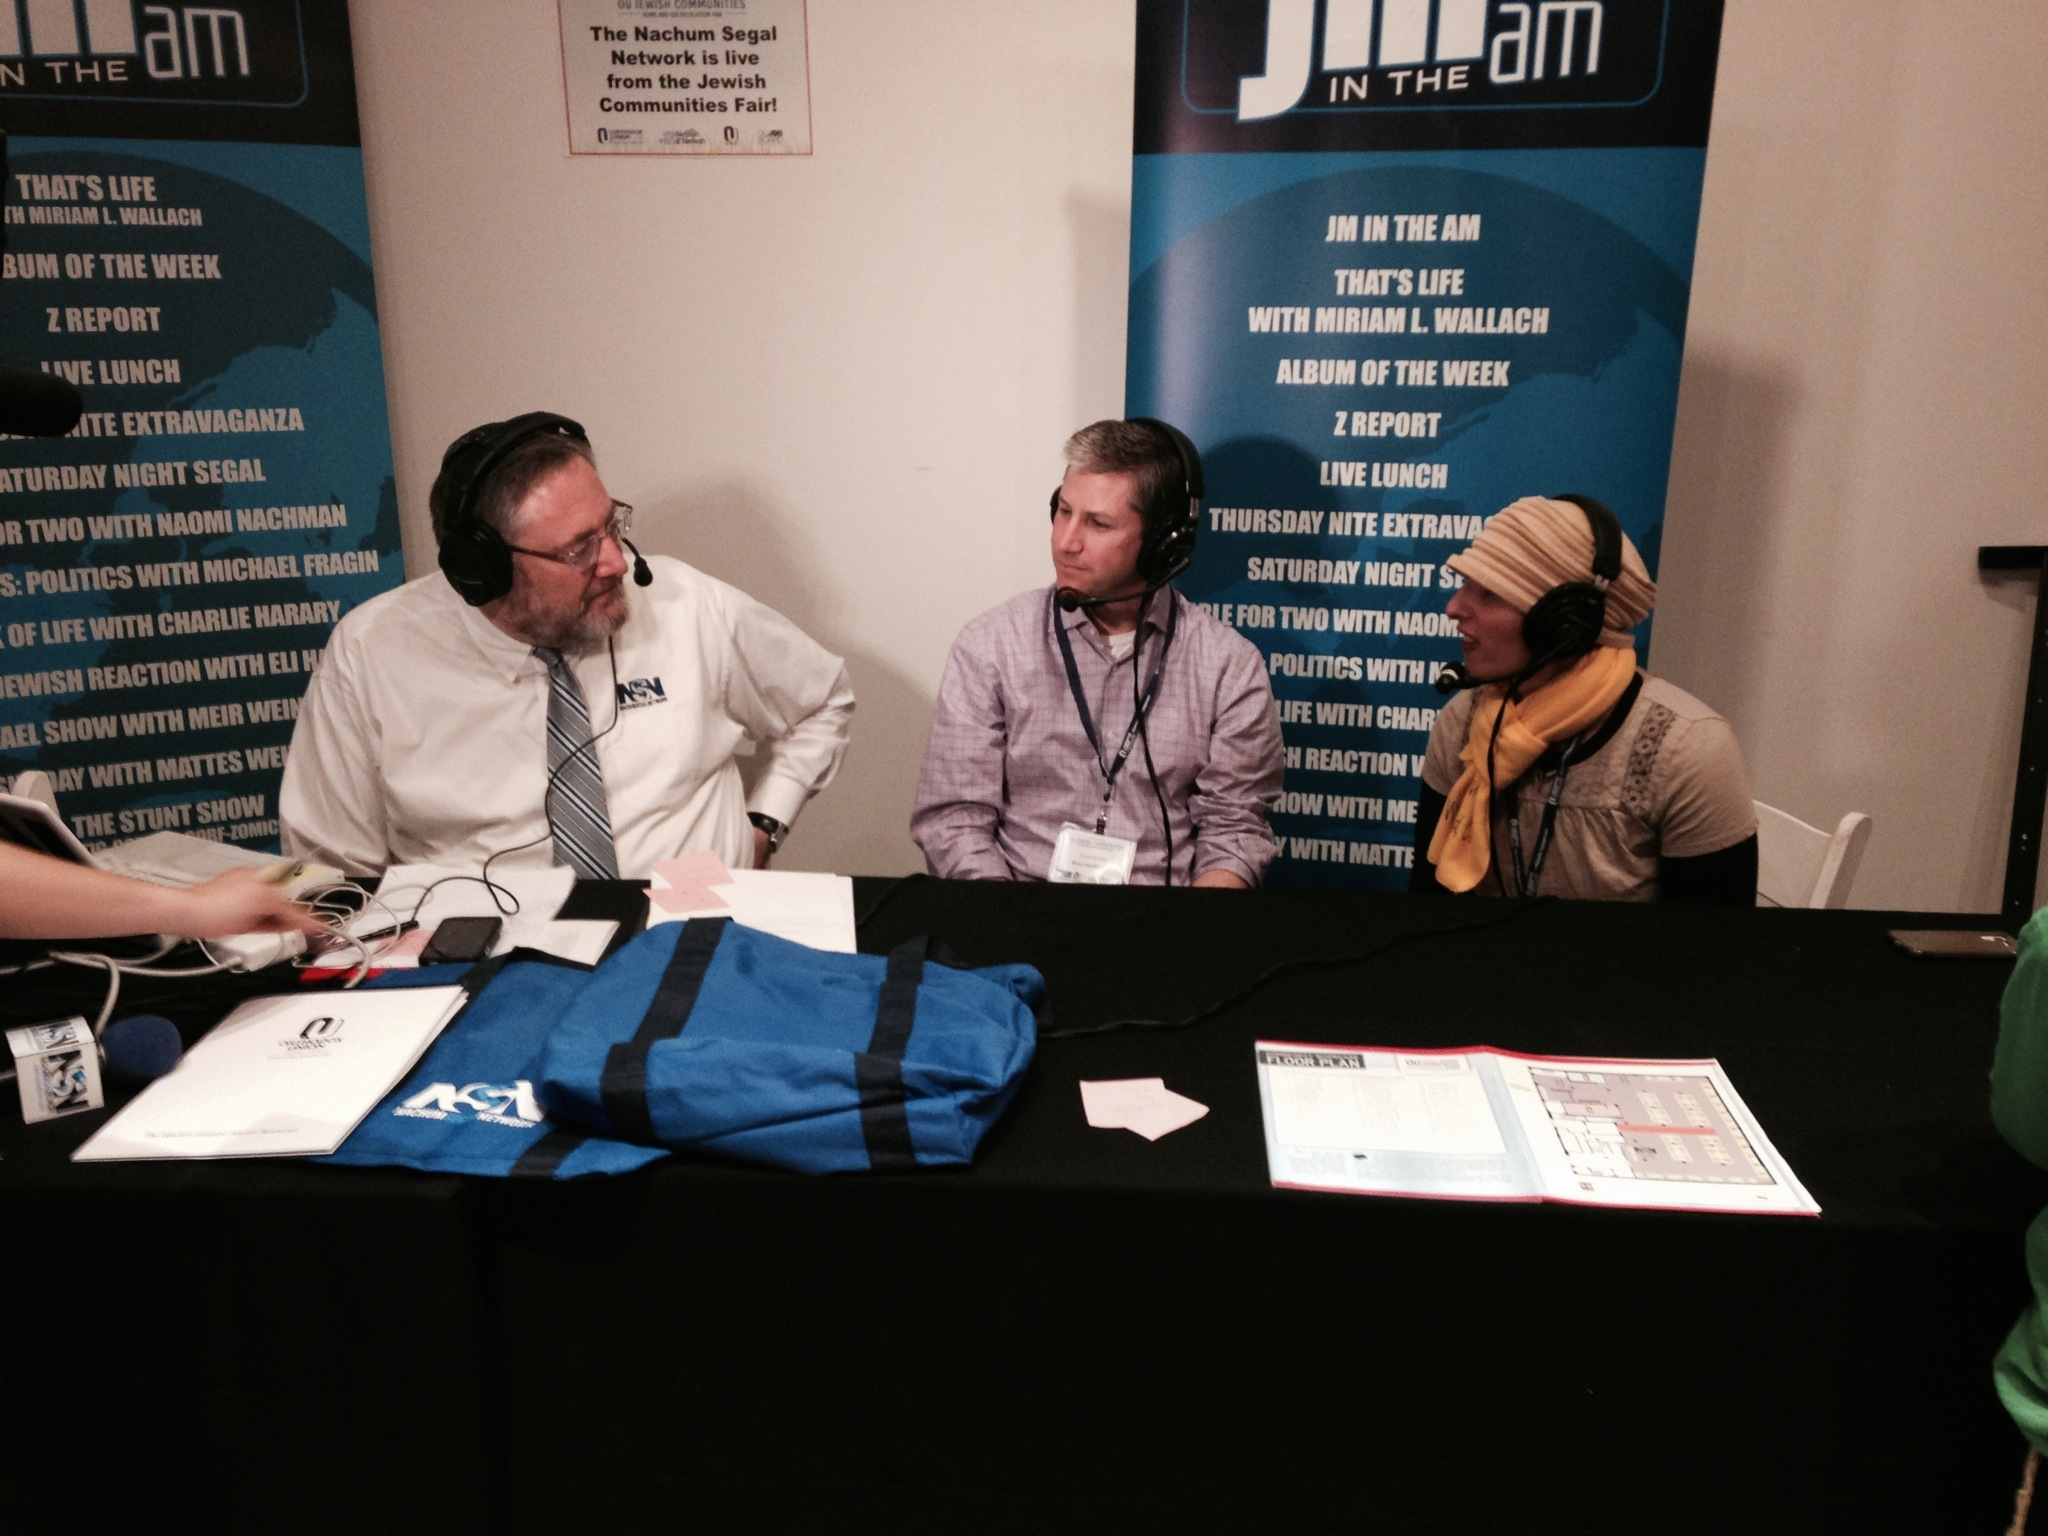 Stuart Kesler and Daniella Robinson Speaking with Nachum Segal at the OU Jewish Communities Home & Job Relocation Fair on April 26, 2015